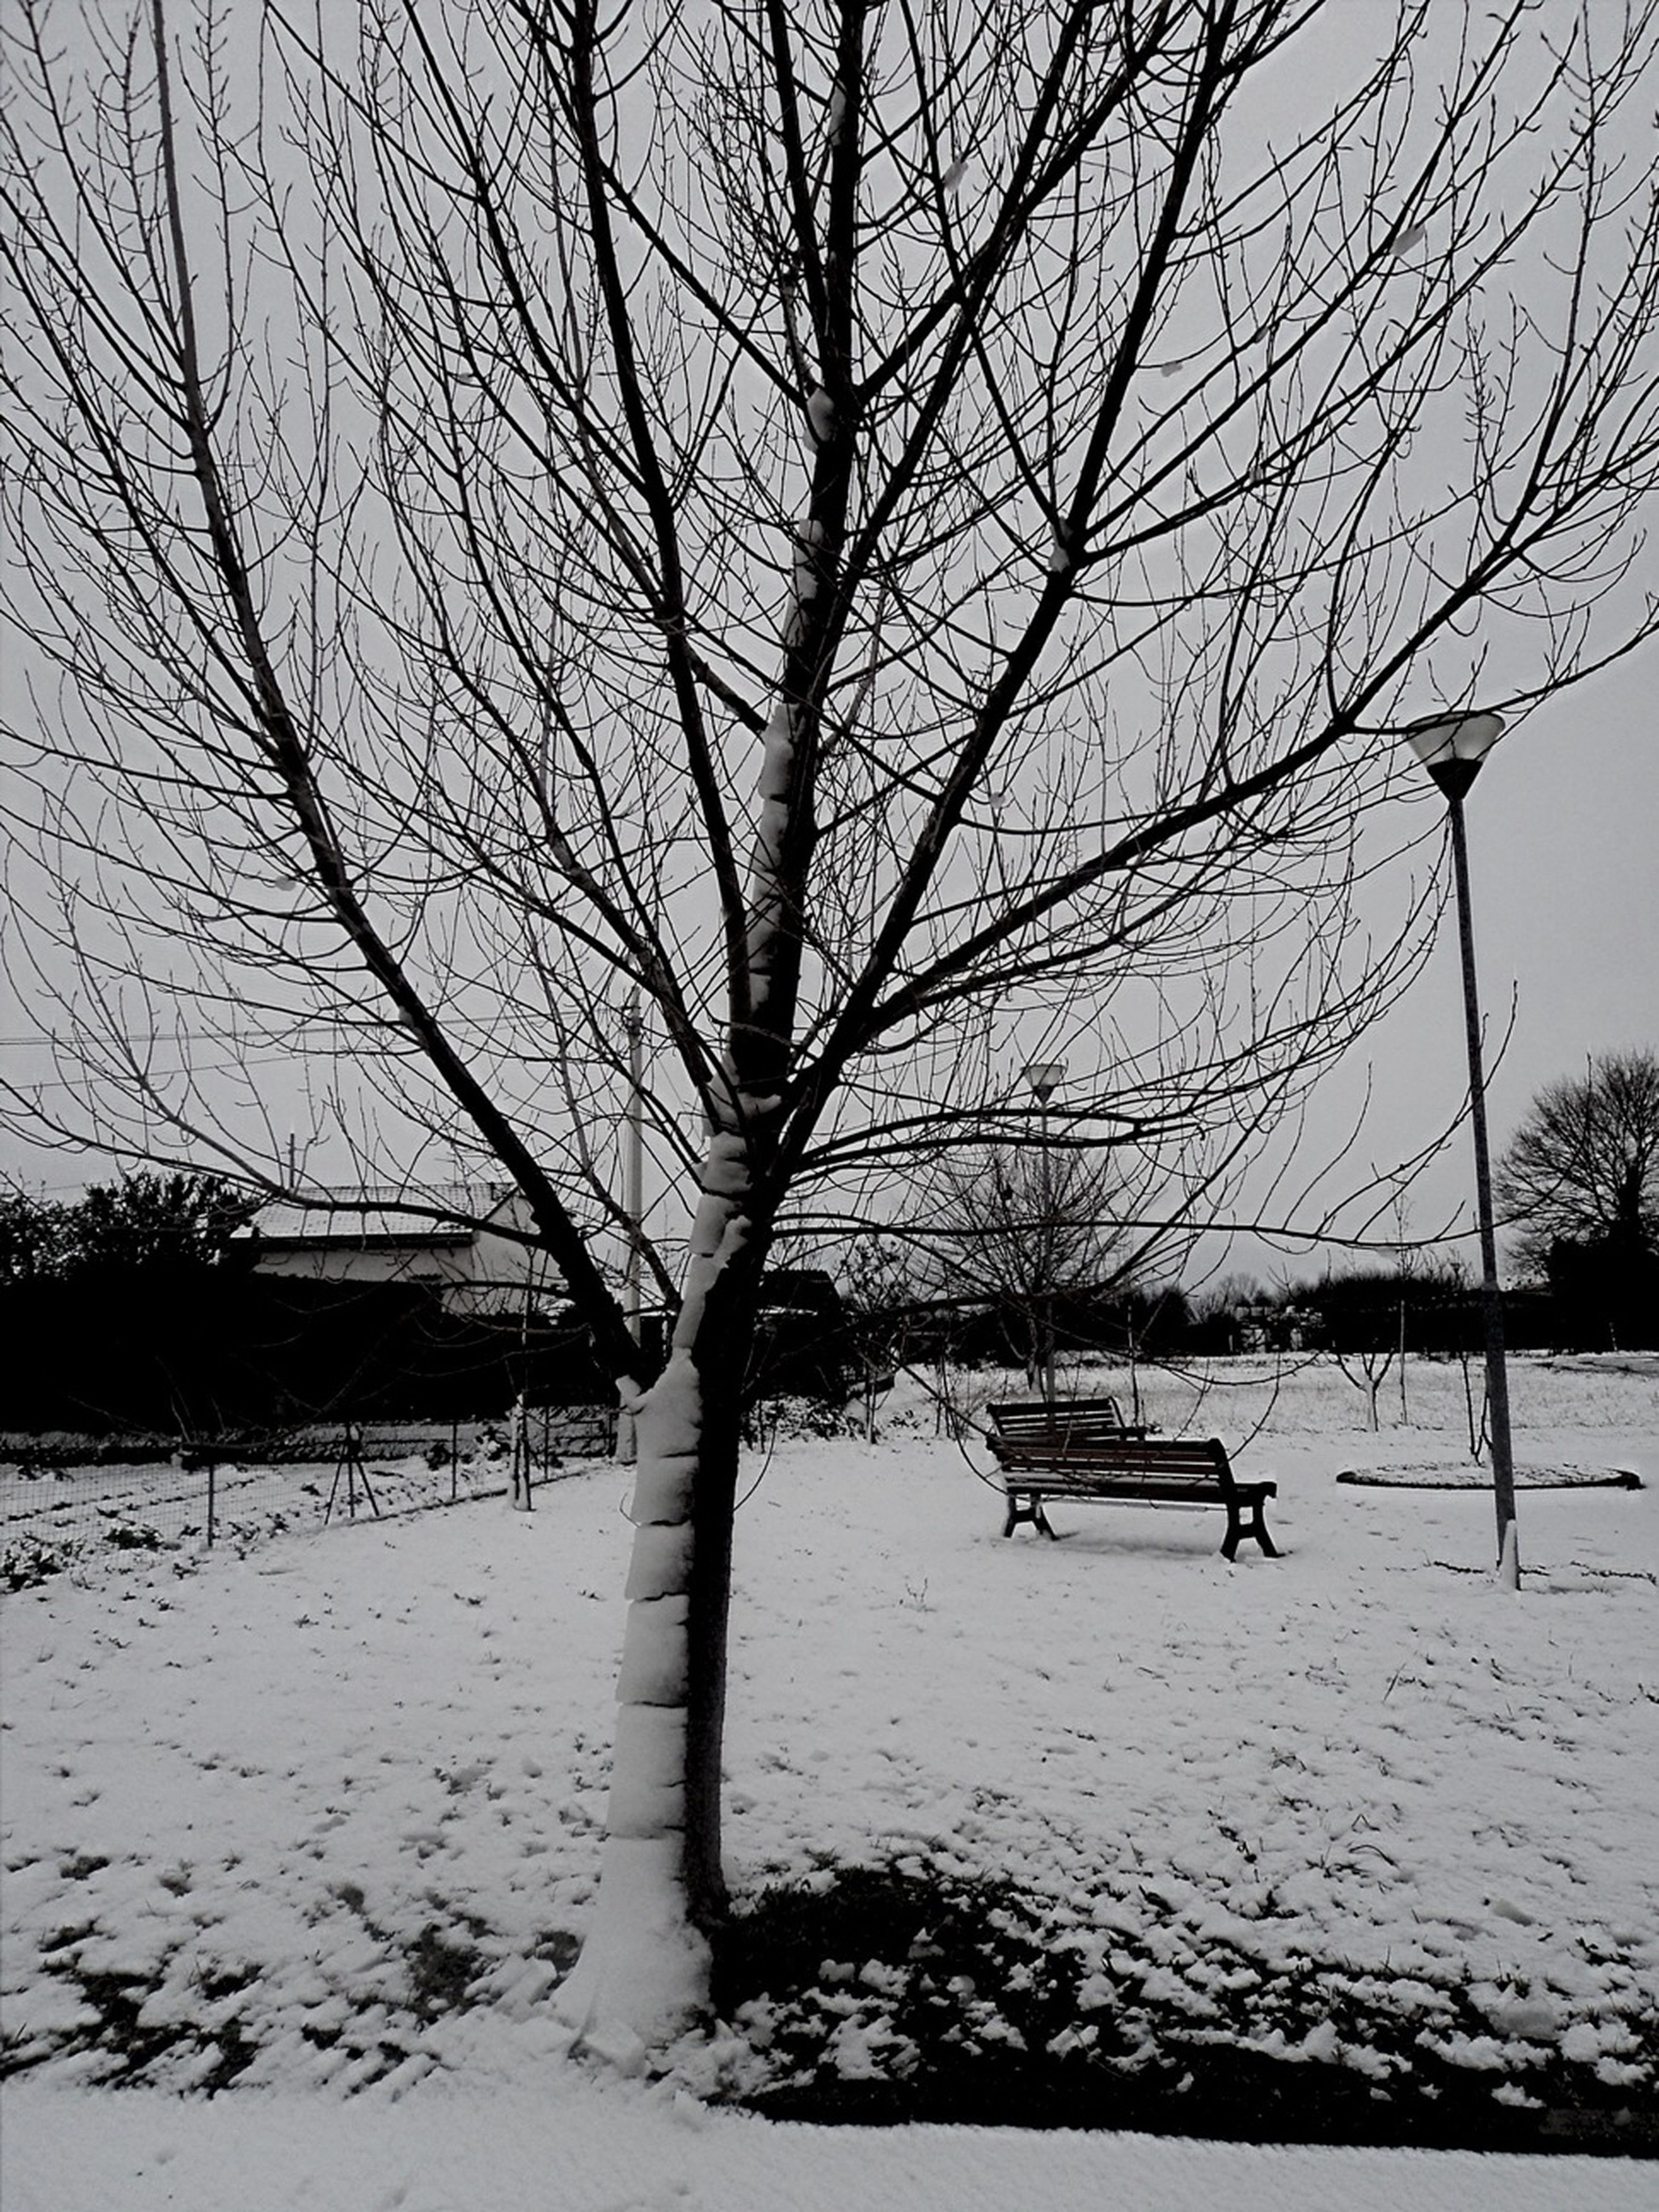 bare tree, tree, branch, season, water, tranquility, nature, sky, tranquil scene, tree trunk, winter, scenics, beauty in nature, built structure, cold temperature, outdoors, bench, snow, silhouette, day